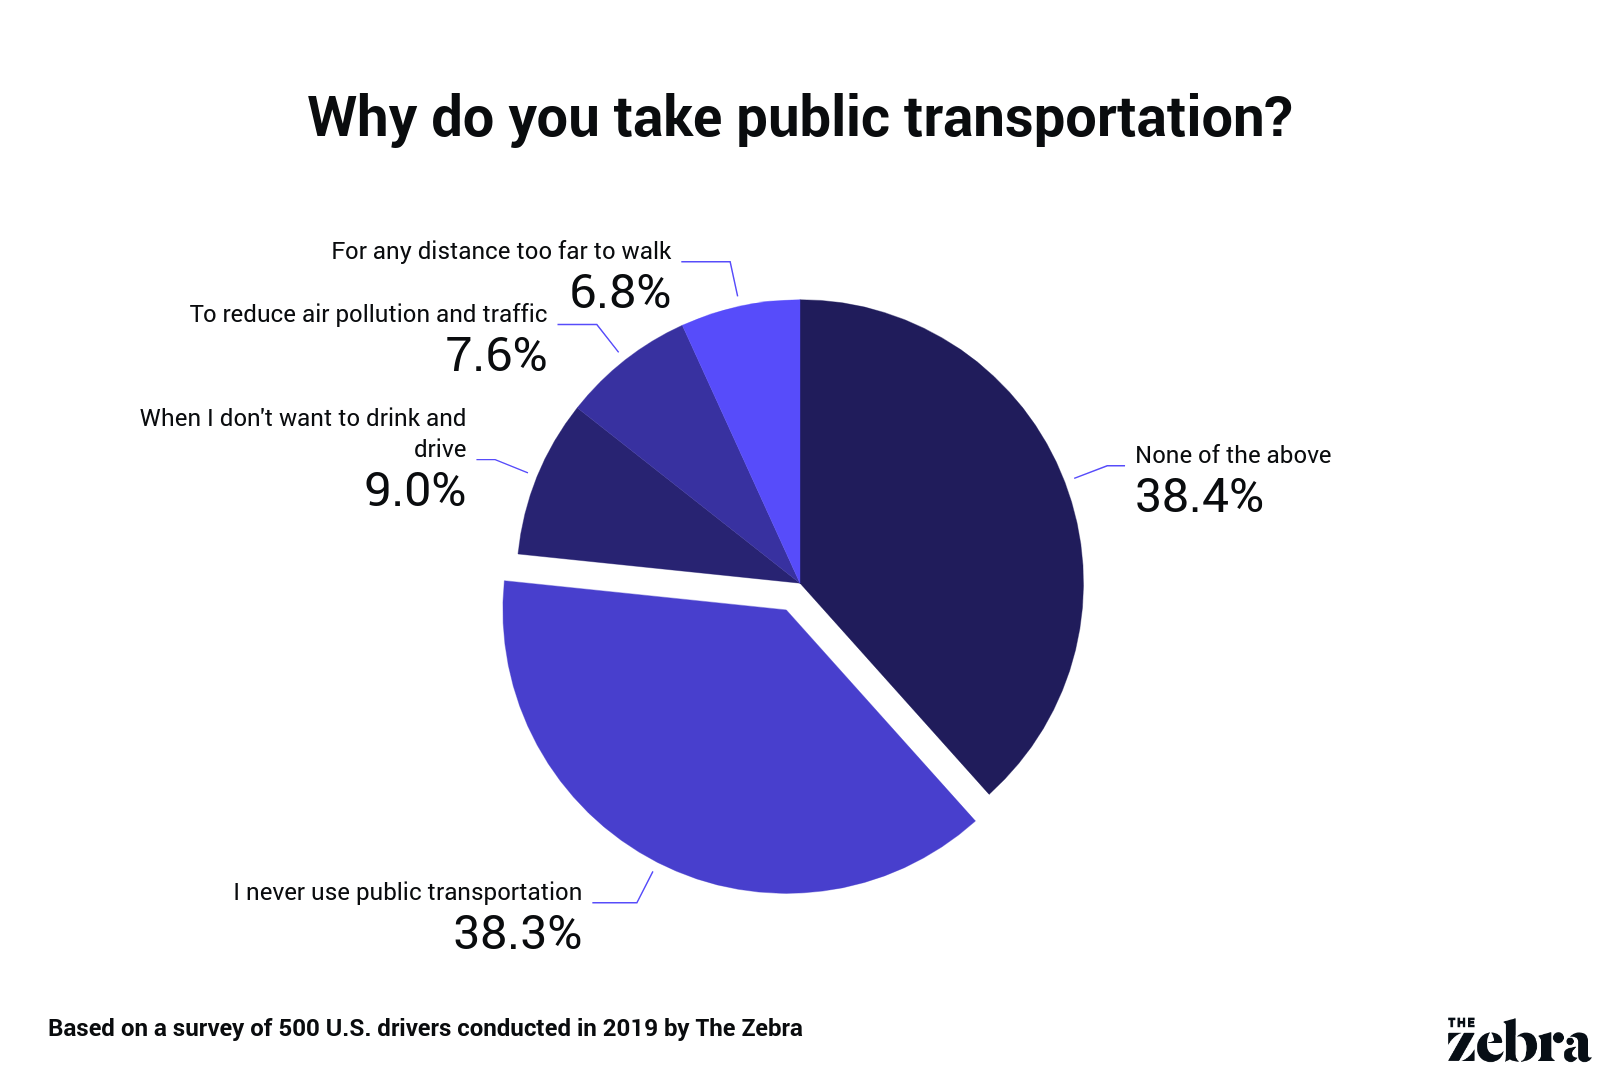 pie chart displaying reasons for using public transportation